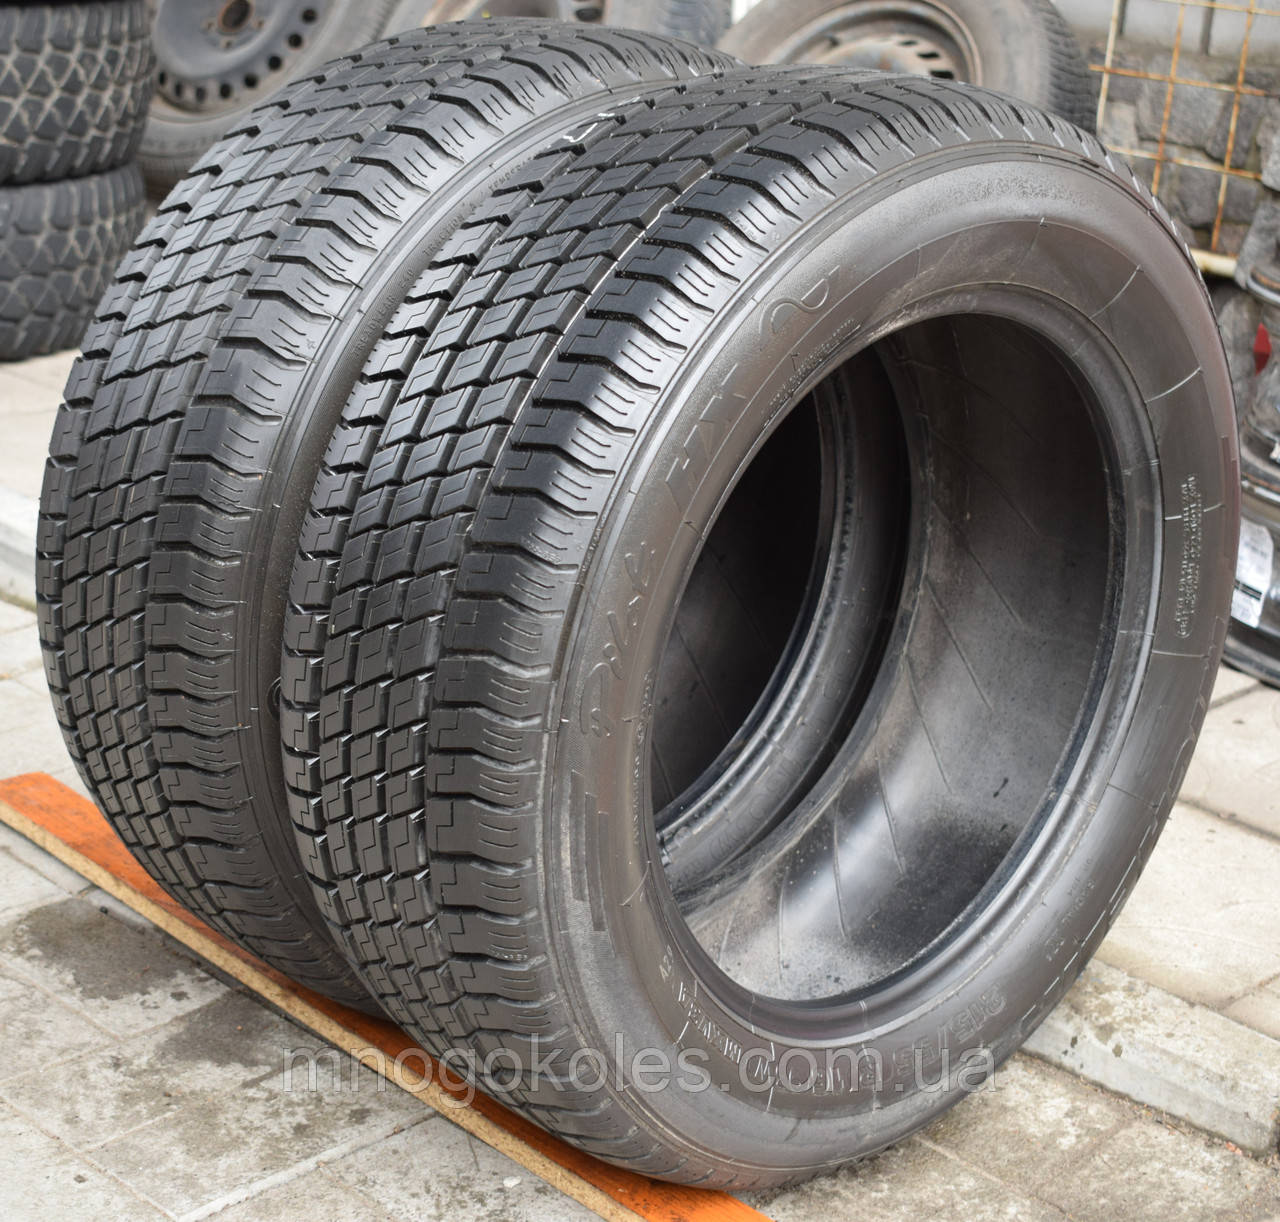 Шины б/у 215/55 R16 Michelin Pilot HX, ЛЕТО, 8 мм, пара